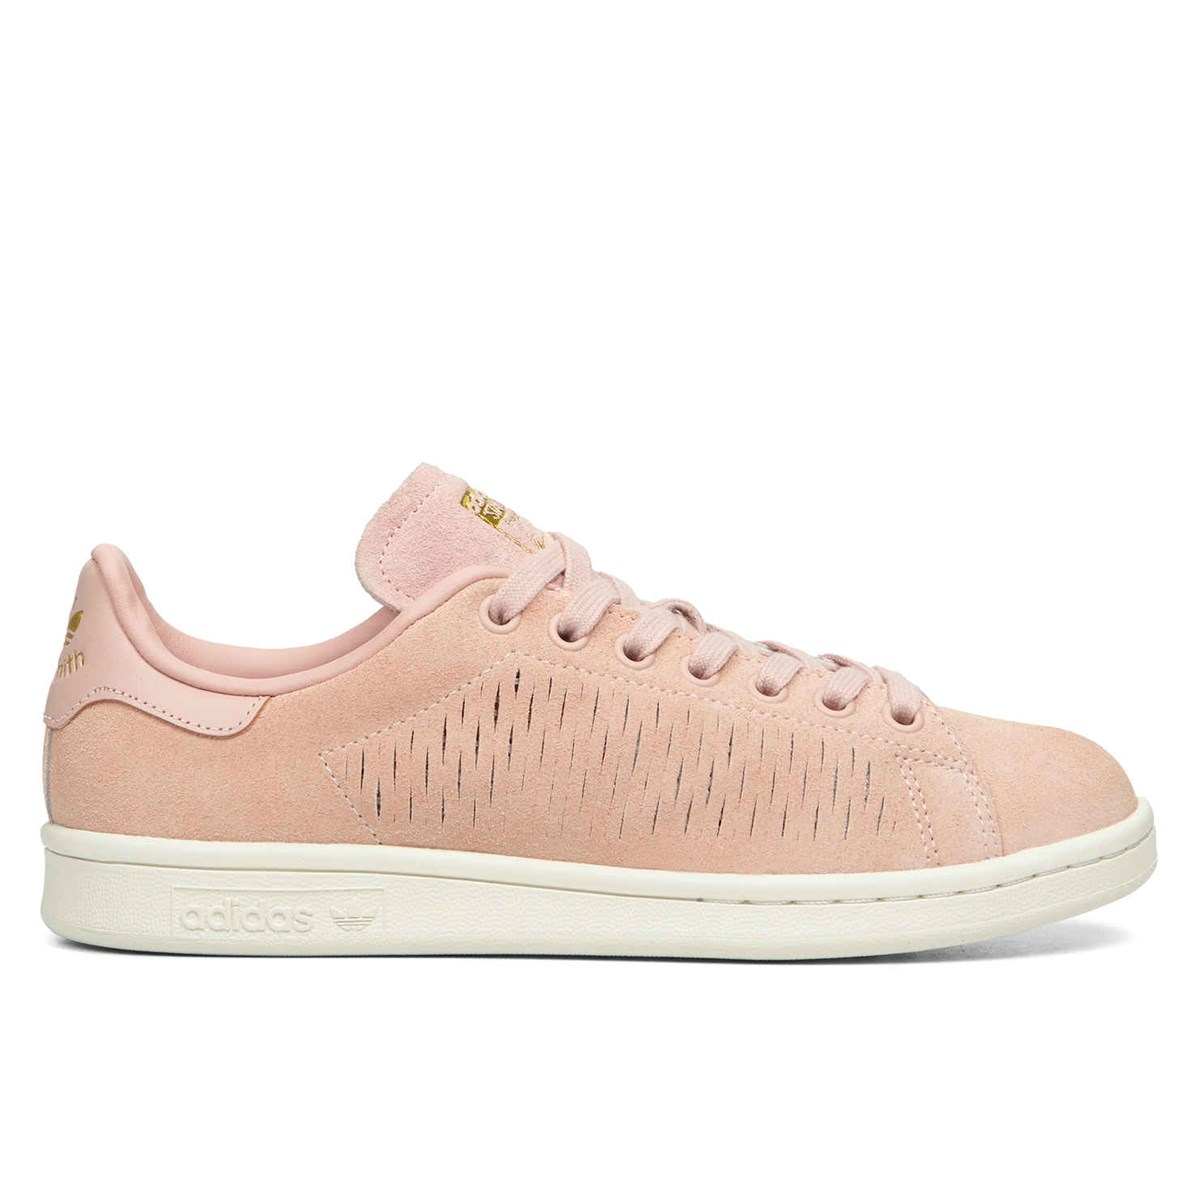 super popular a133a db7f9 Women's Stan Smith Pink Sneaker